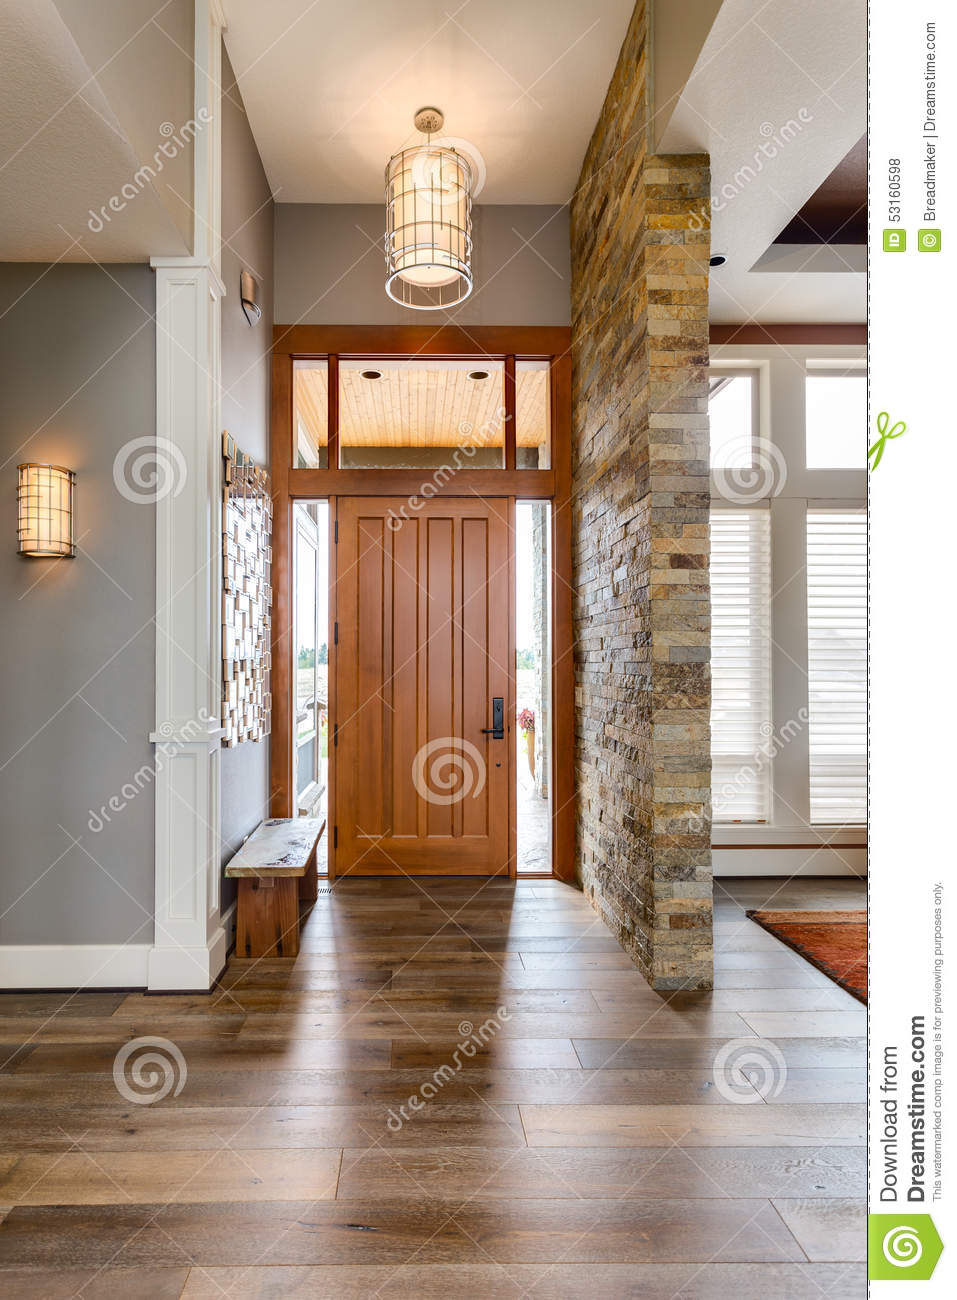 Front Foyer Xl : Entryway foyer in new luxury home stock photo image of